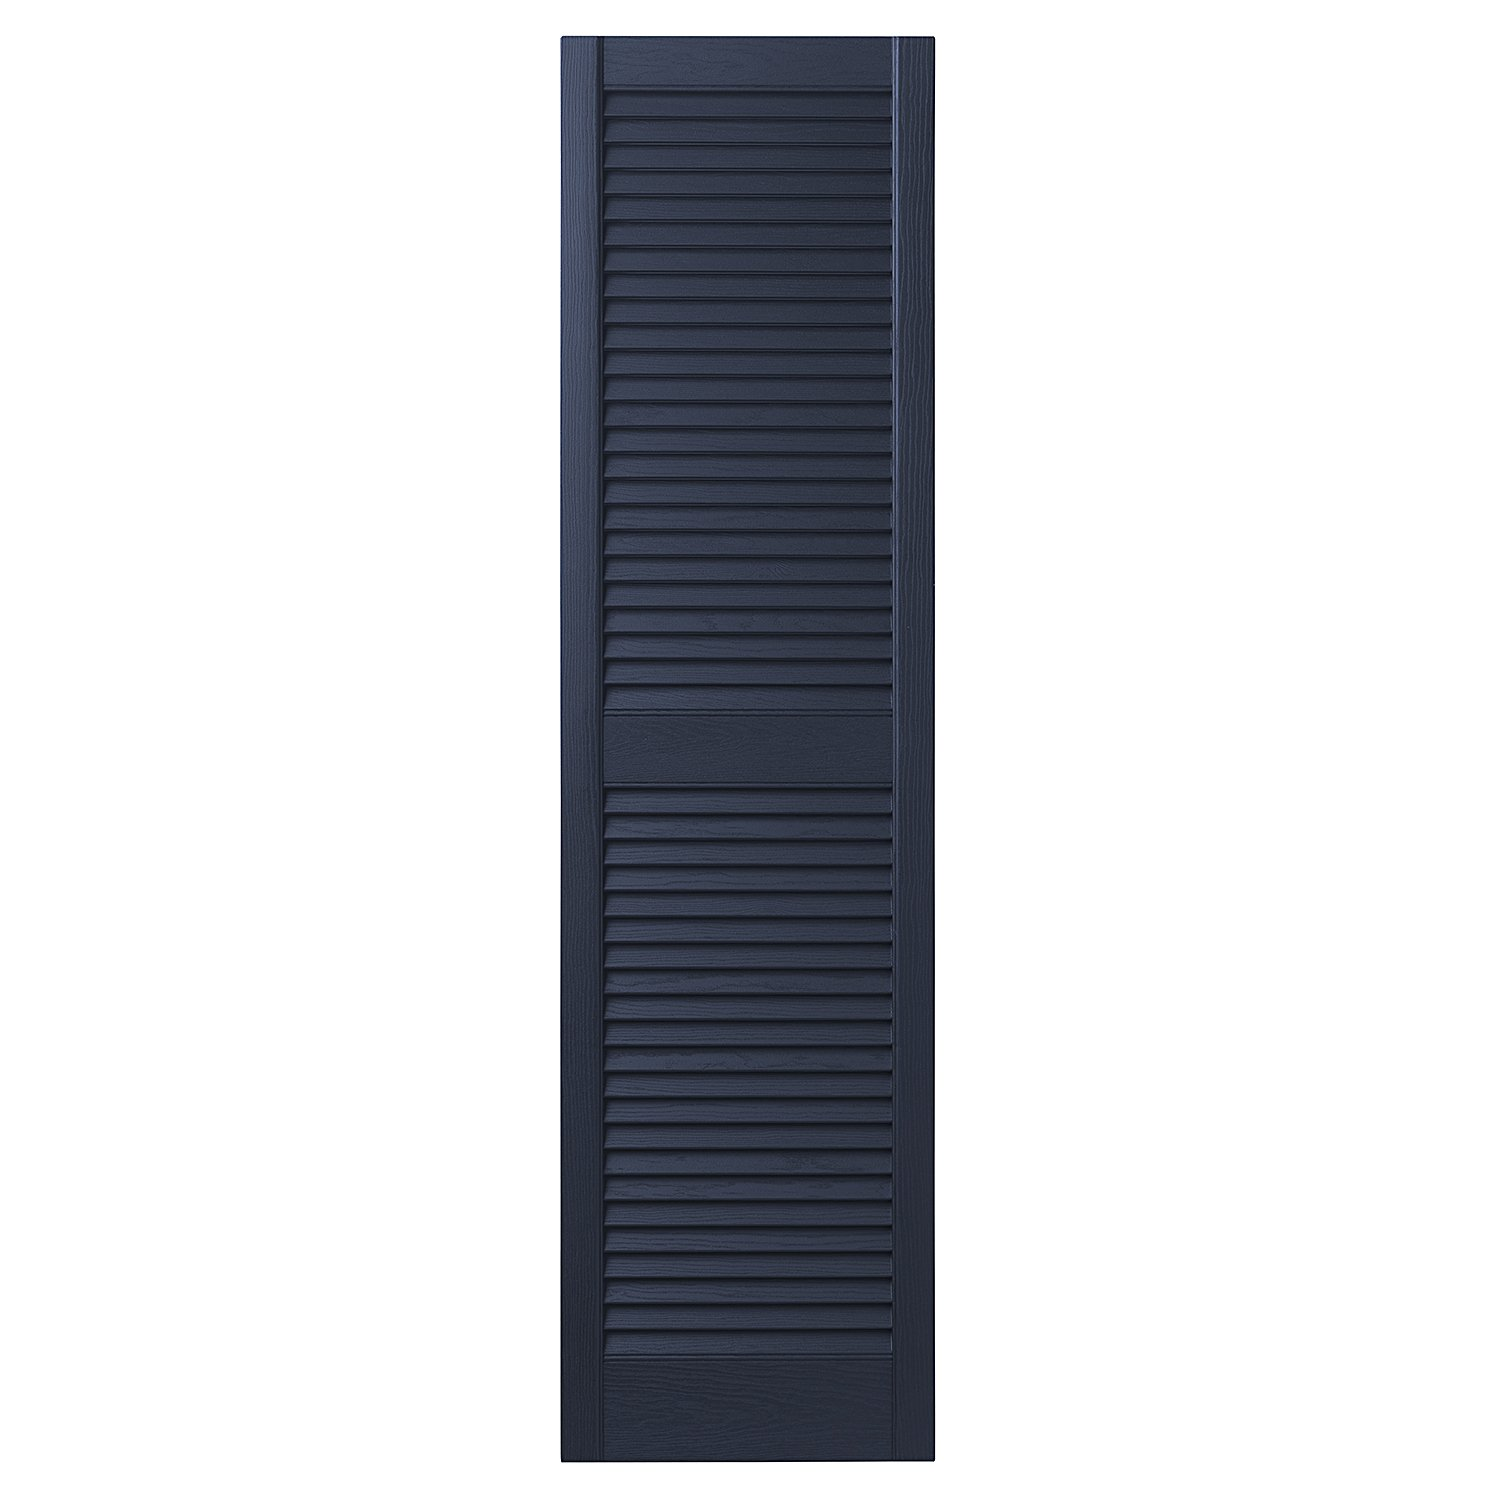 Ply Gem Shutters and Accents VINLV1559 95 Louvered Shutter 15'' Dark Navy by Ply Gem Shutters and Accents